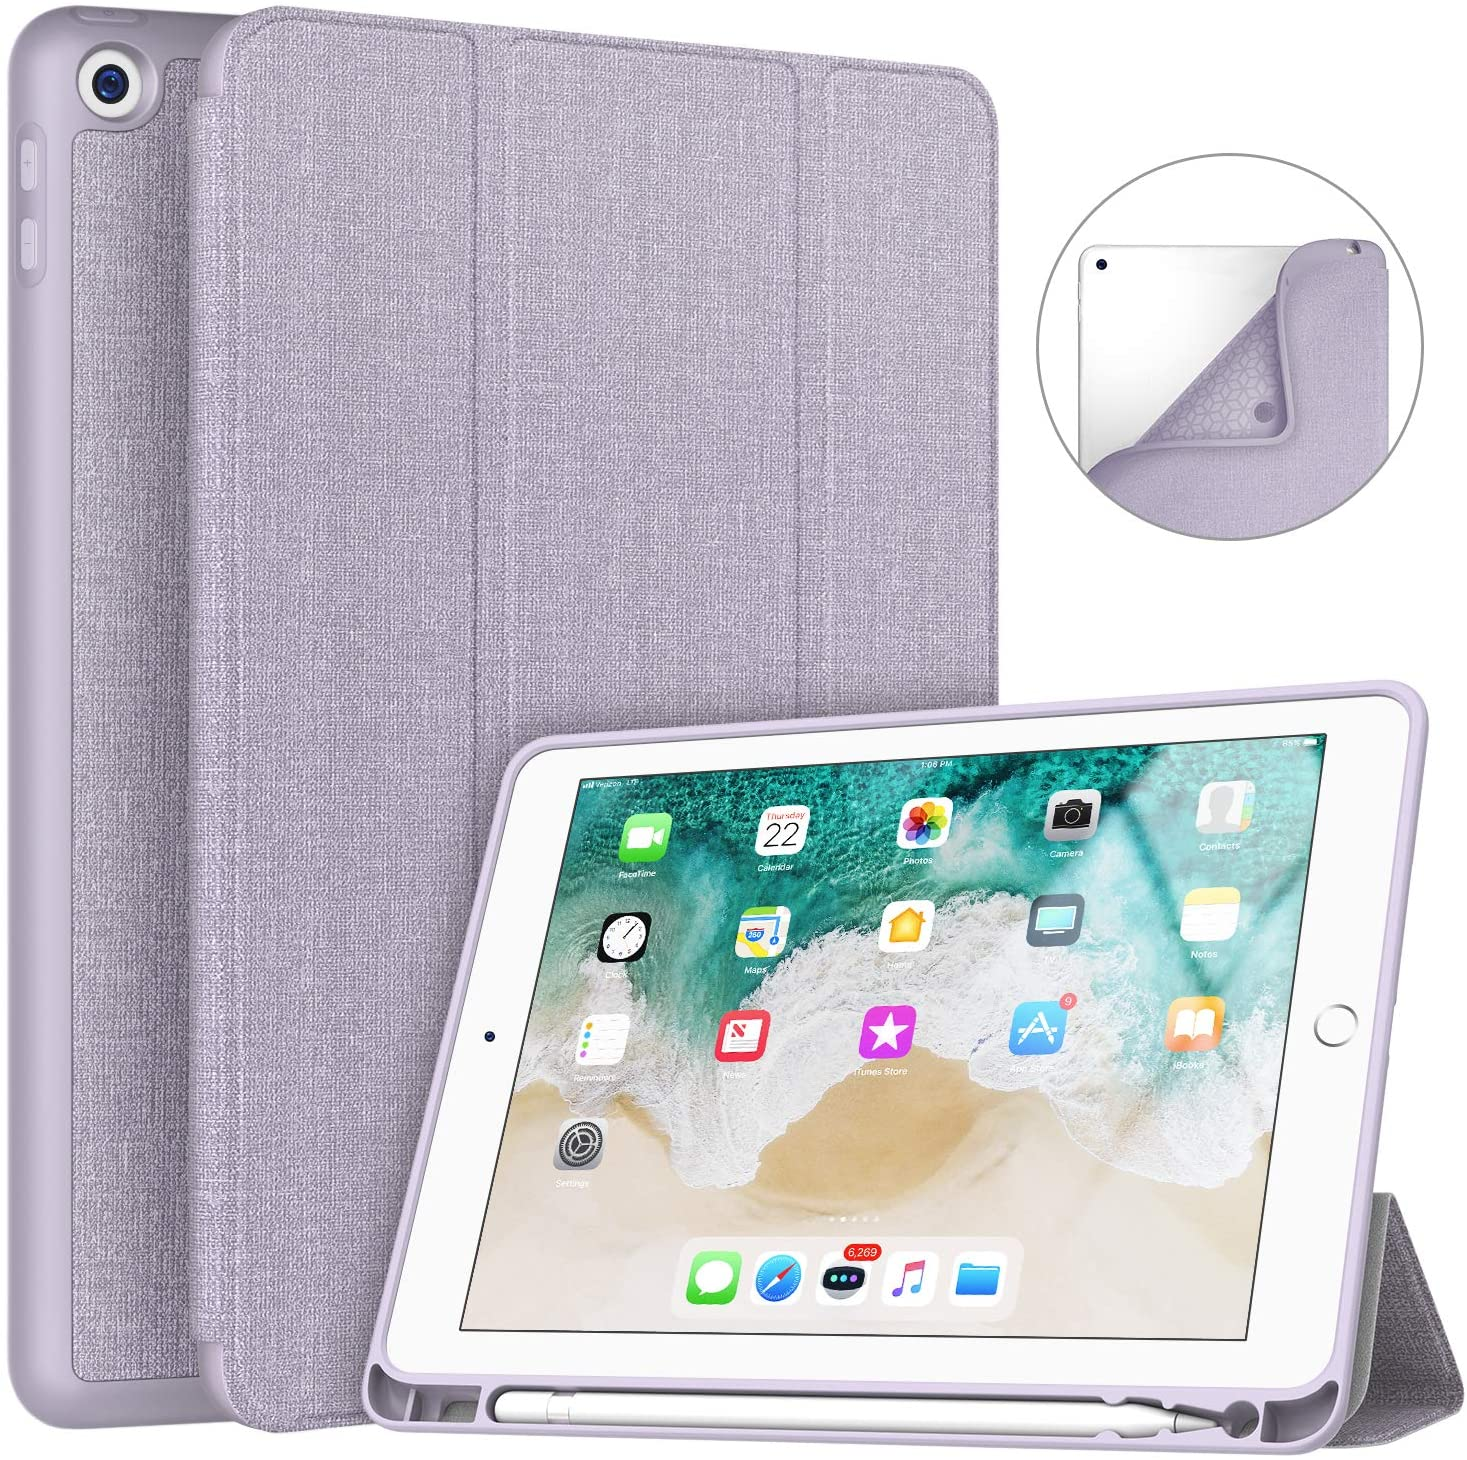 Soke iPad 9.7 2018/2017 Case with Pencil Holder, Smart iPad Case Trifold Stand with Shockproof Soft TPU Back Cover and Auto Sleep/Wake Function for iPad 9.7 inch 5th/6th Generation, Violet